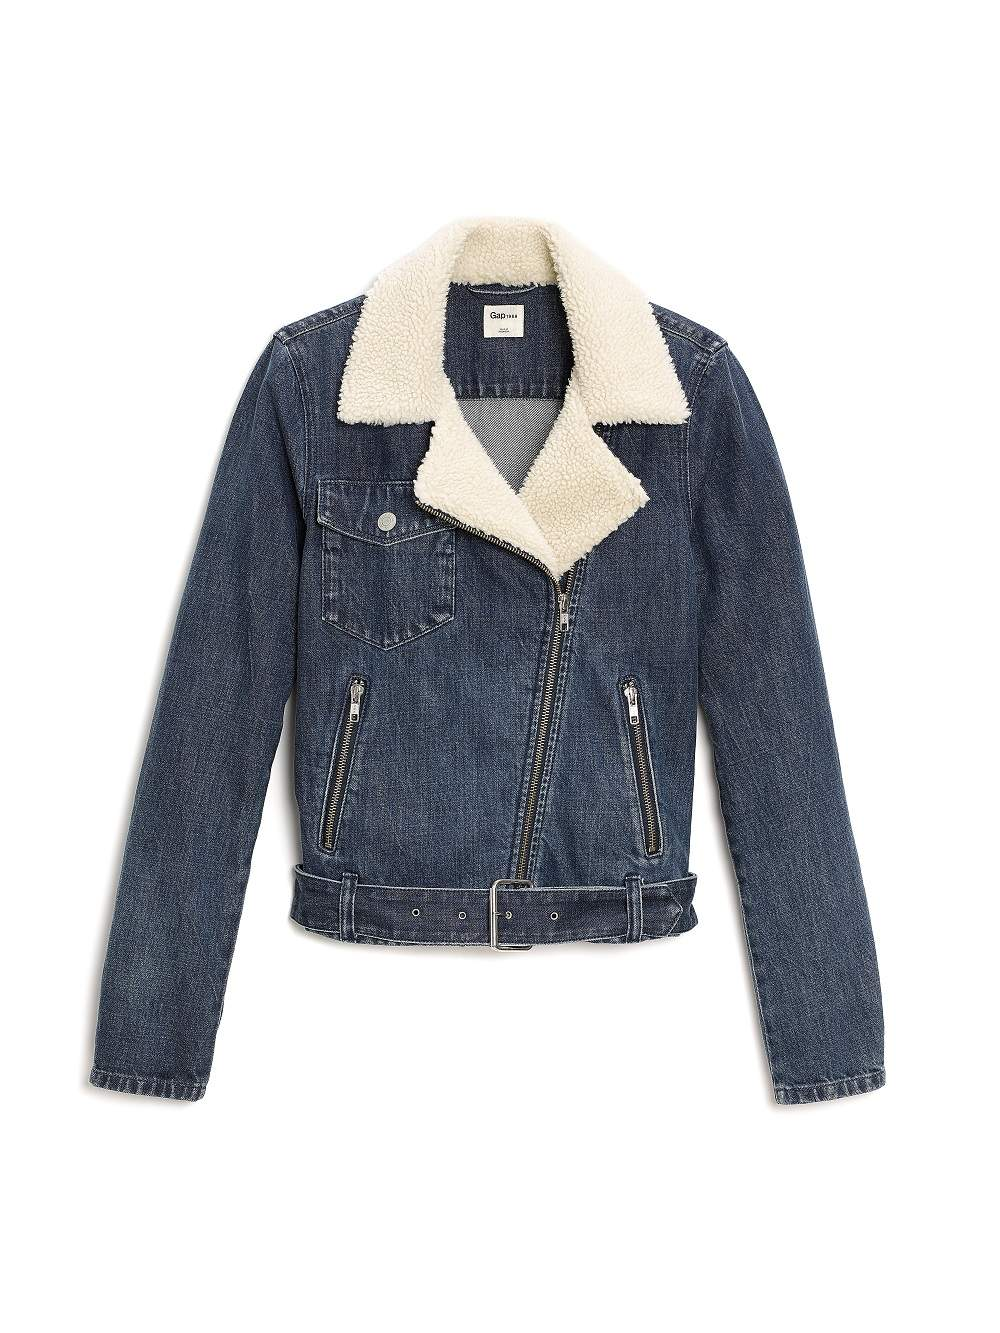 Jacket, GAP, price on request